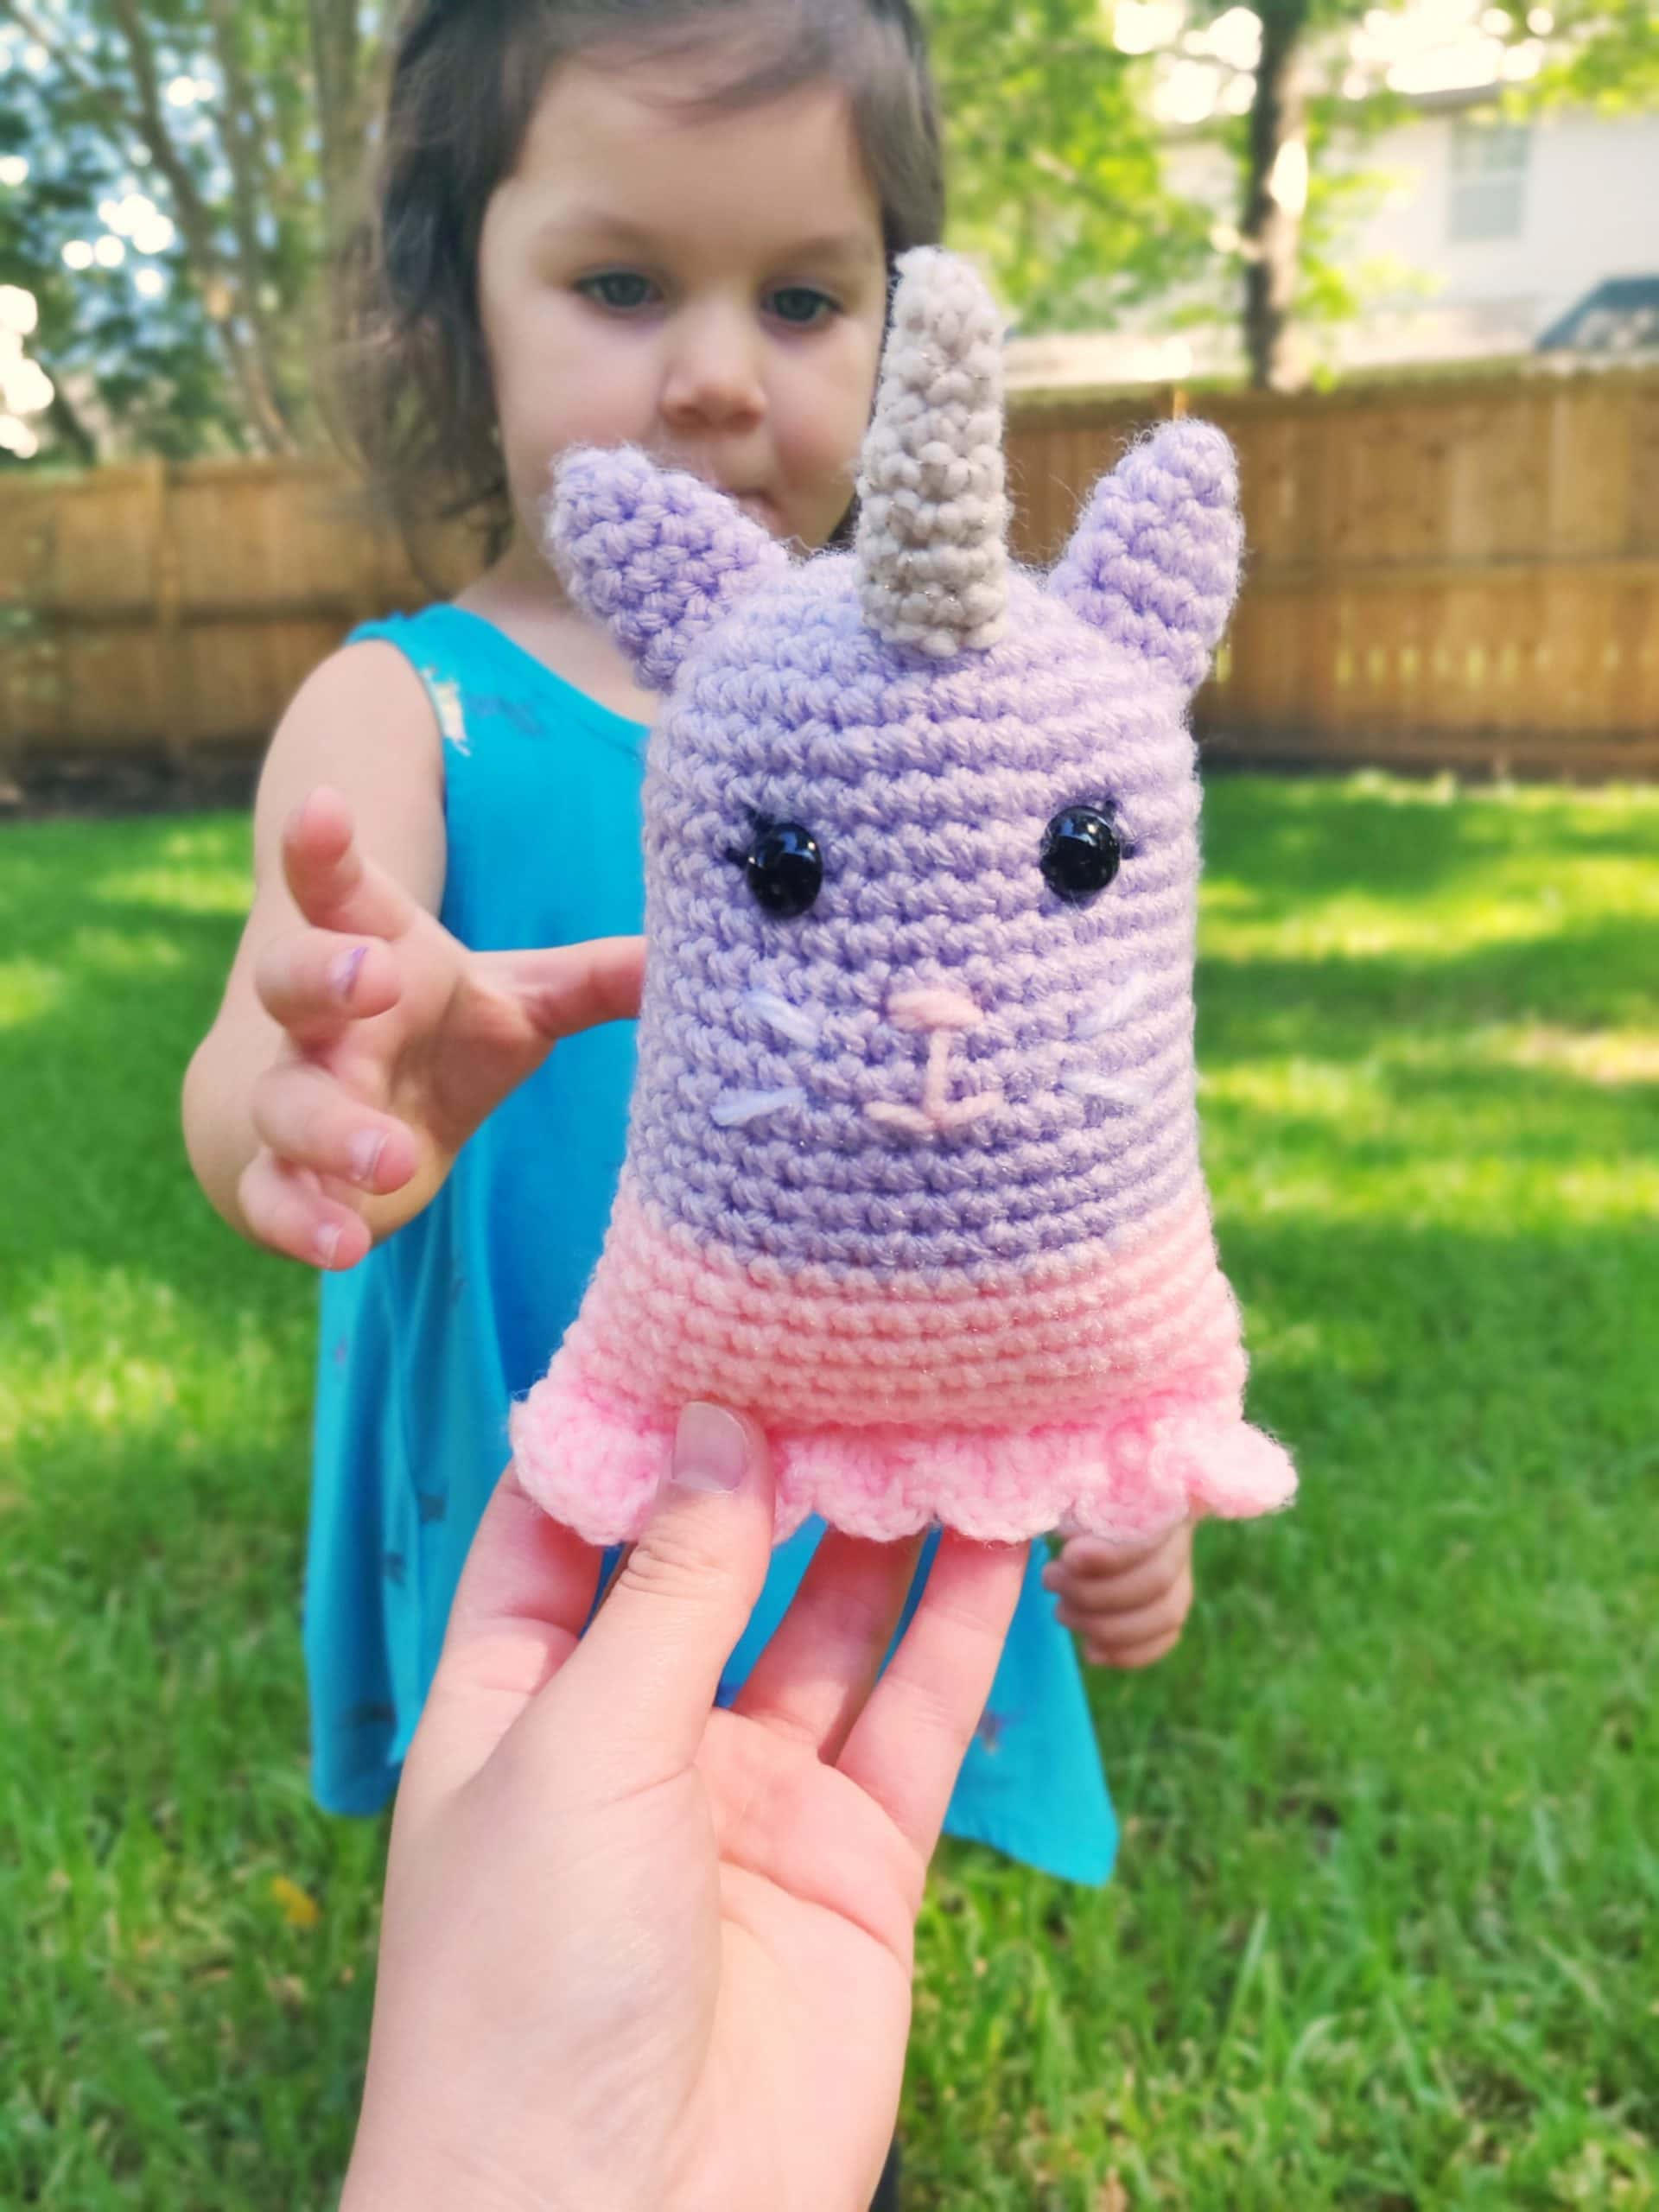 Young girl reaching out for her crochet unicorn kitty toy plush.